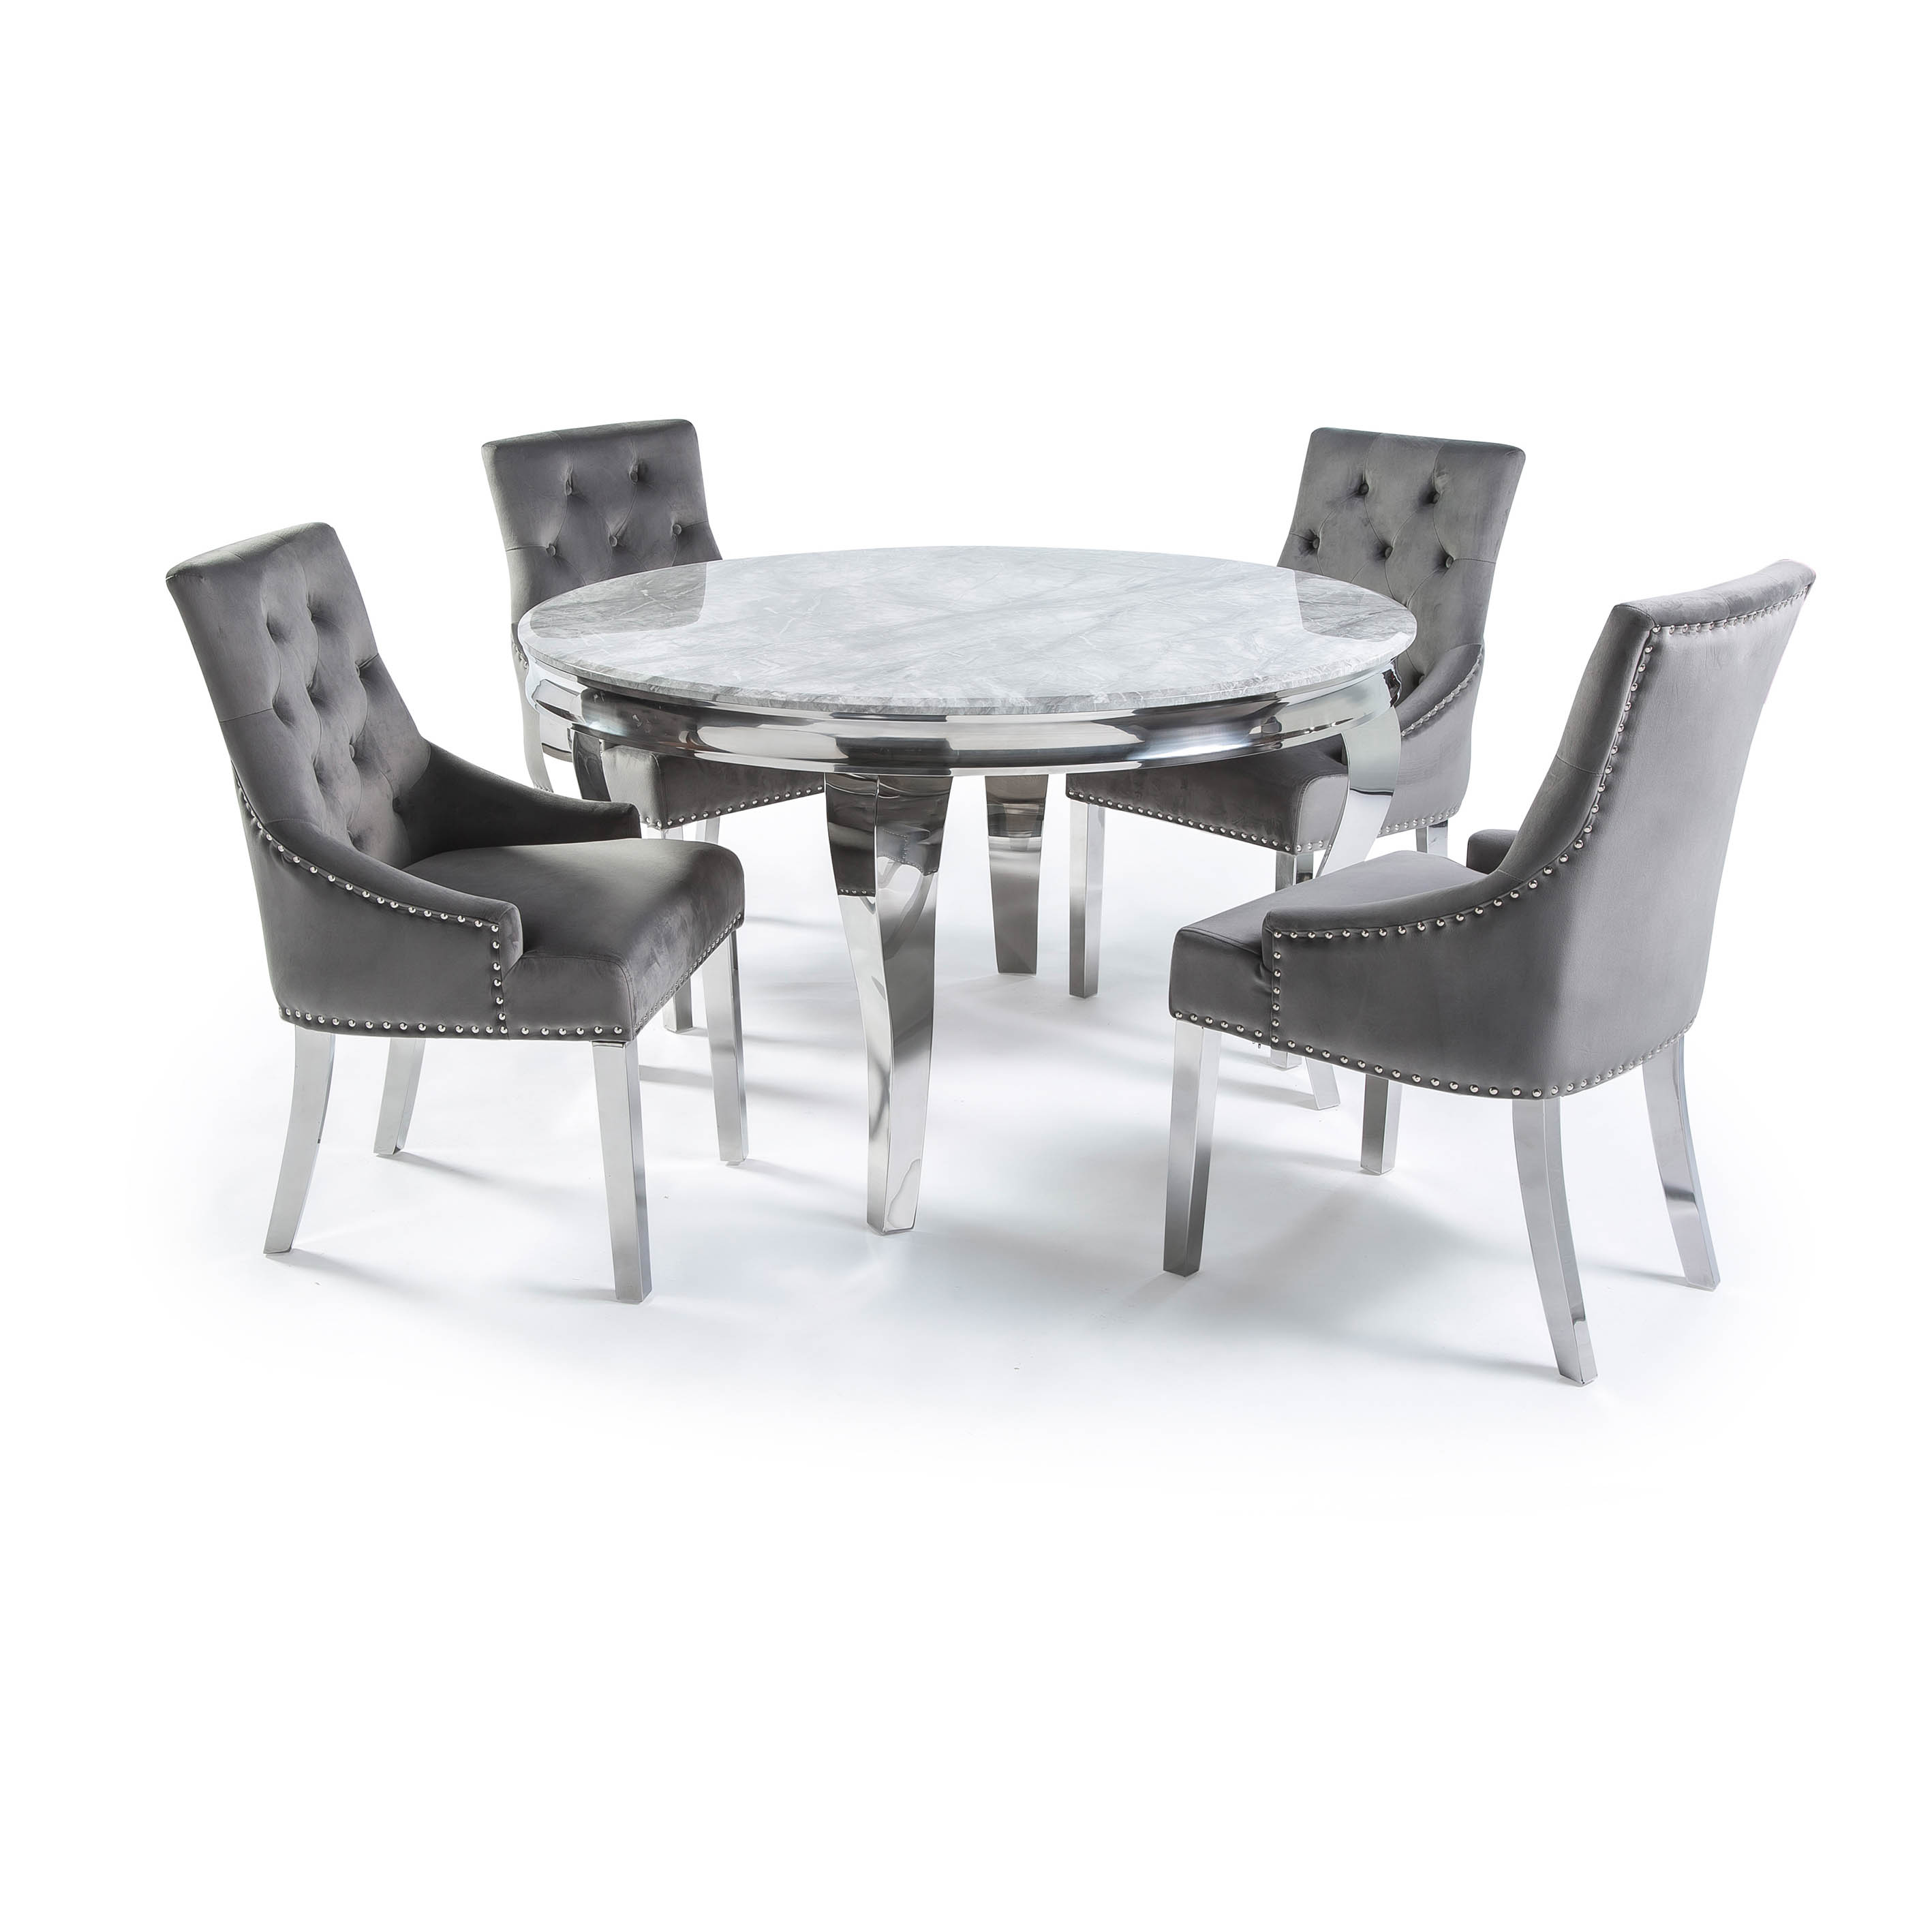 Dining Table Chair Sets Grosvenor